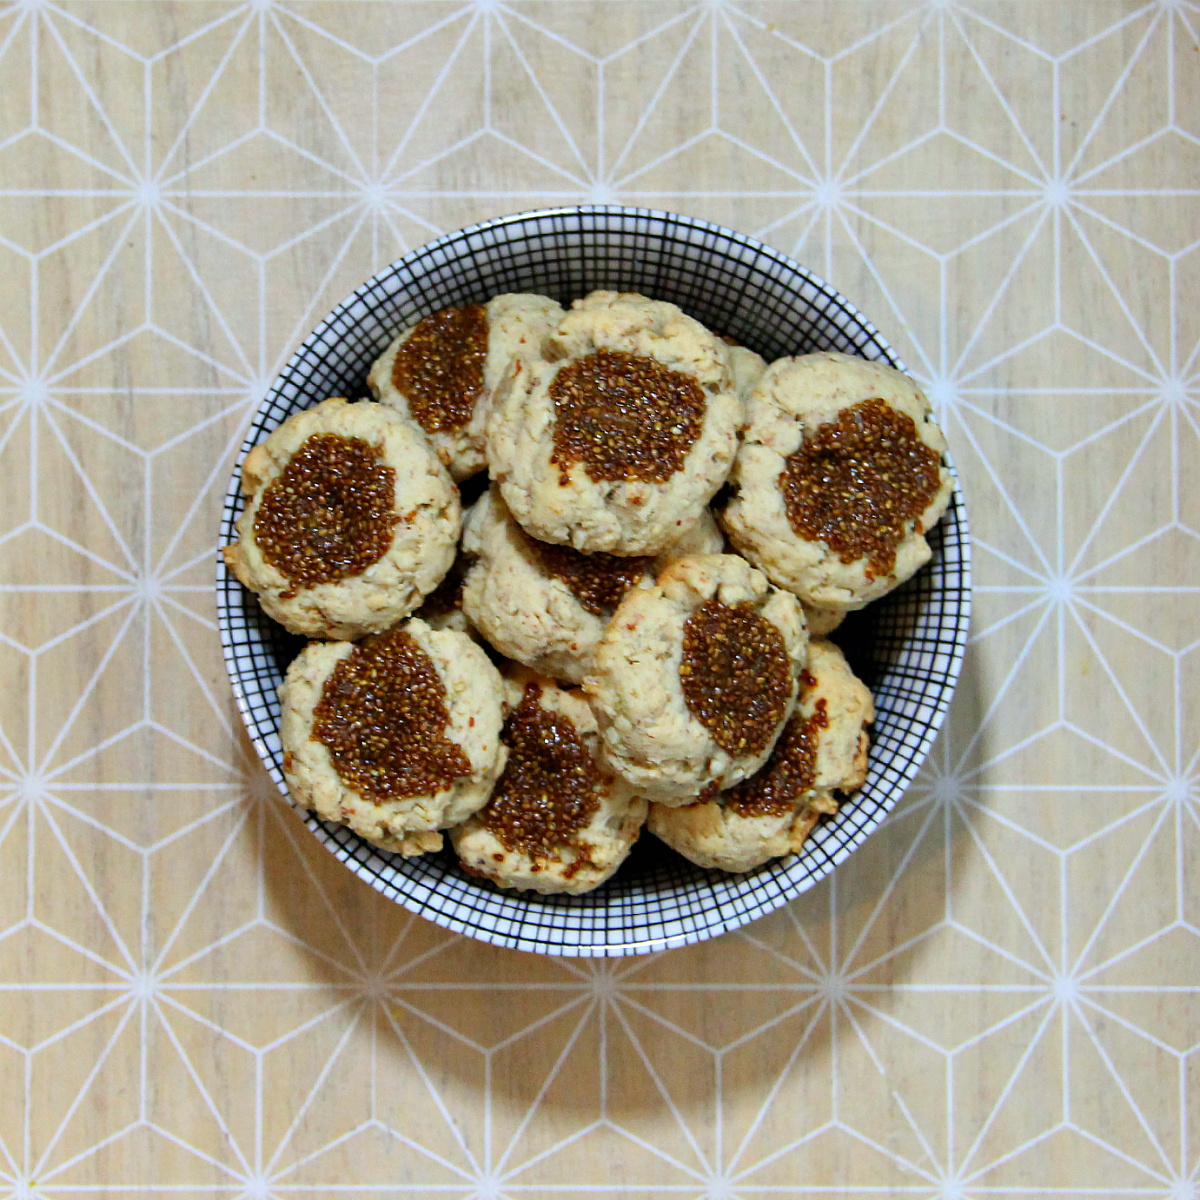 Vegan Lemon Chia Thumbprint Cookies - The Vegan Eskimo